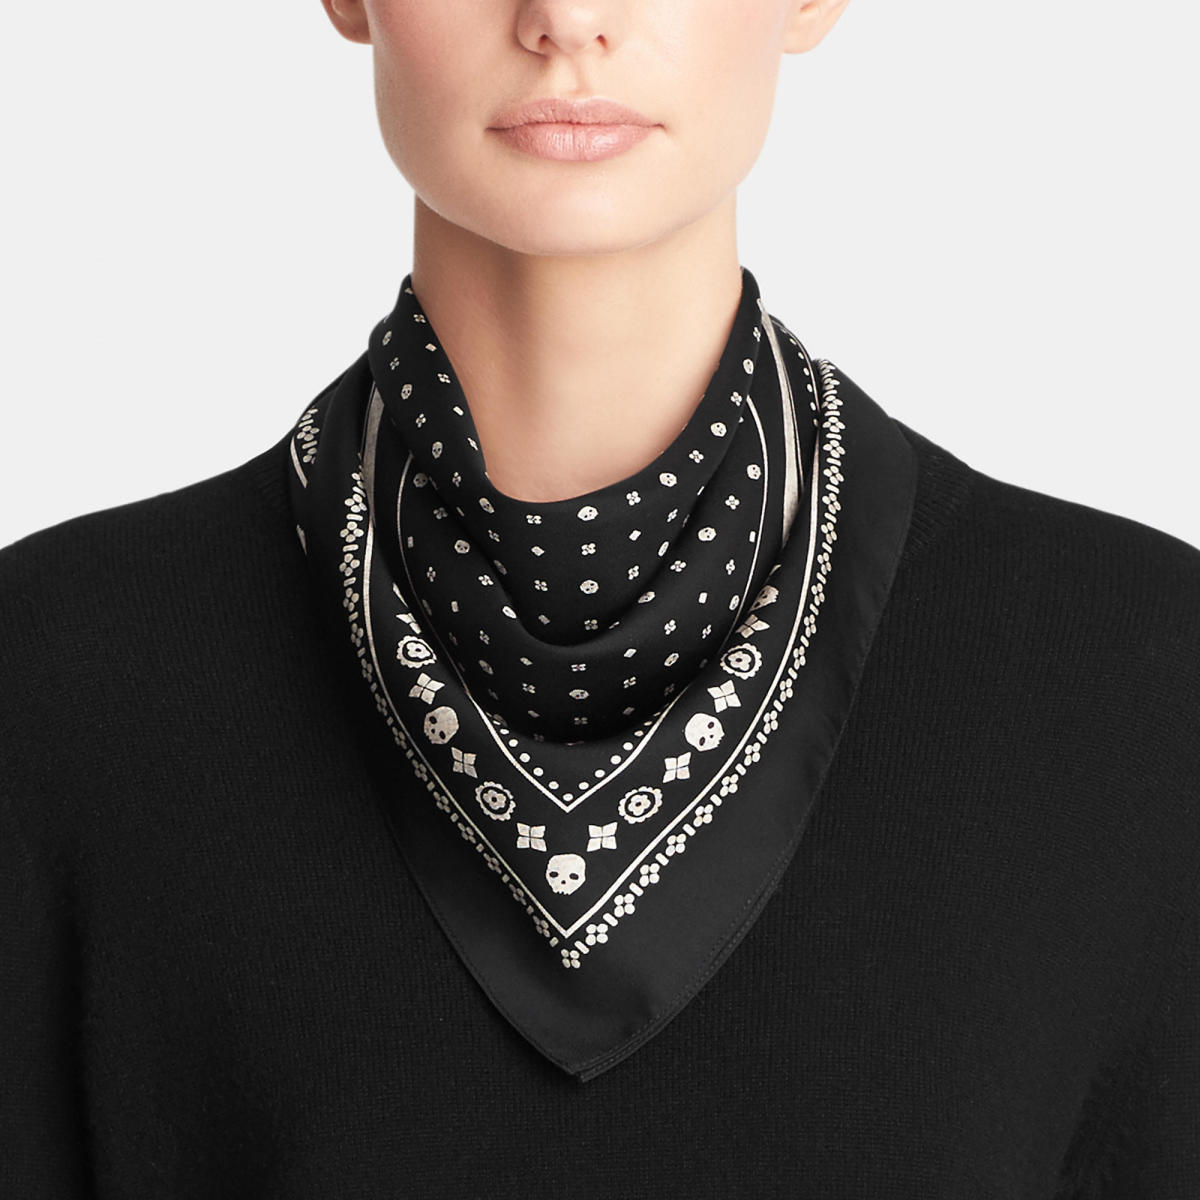 Skulls Silk Foulard Square Scarf, $195, available at Coach